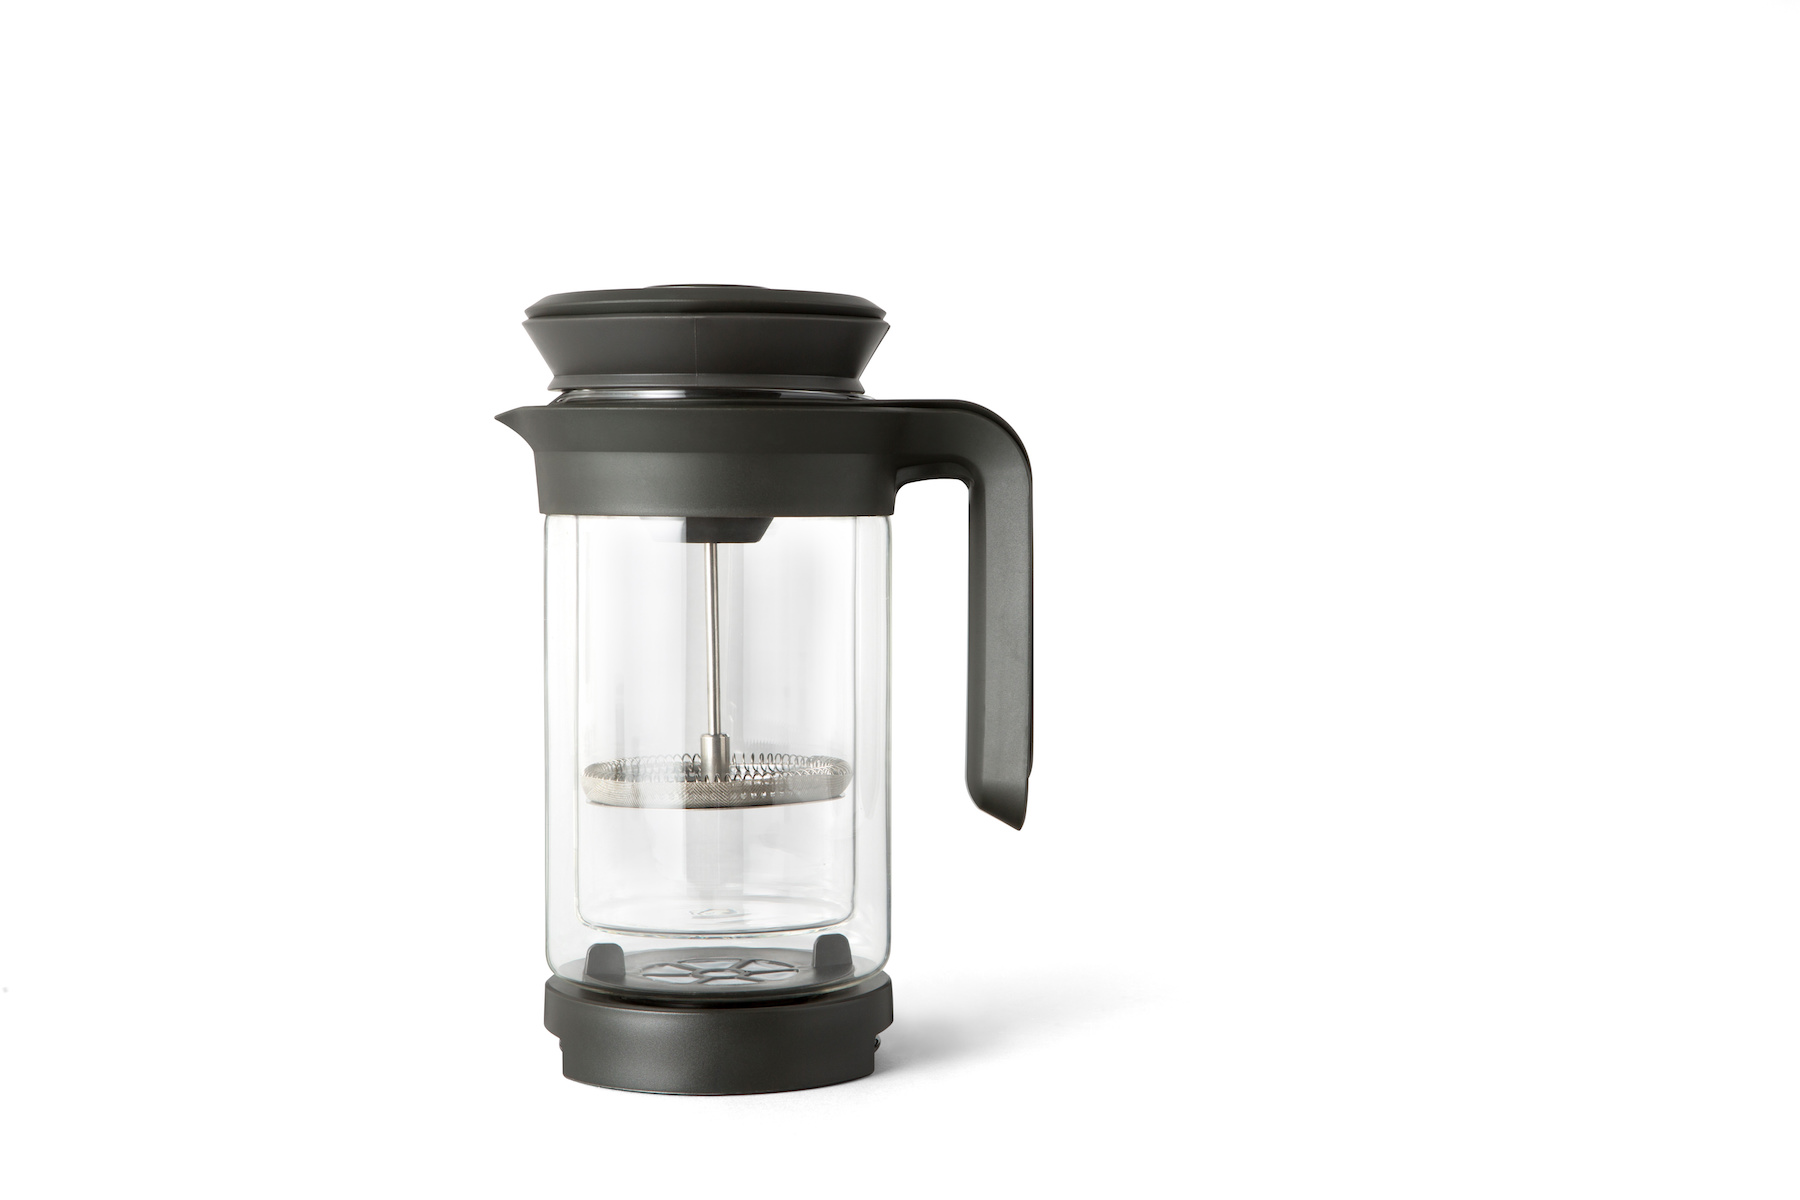 chefn coffee brewing kit